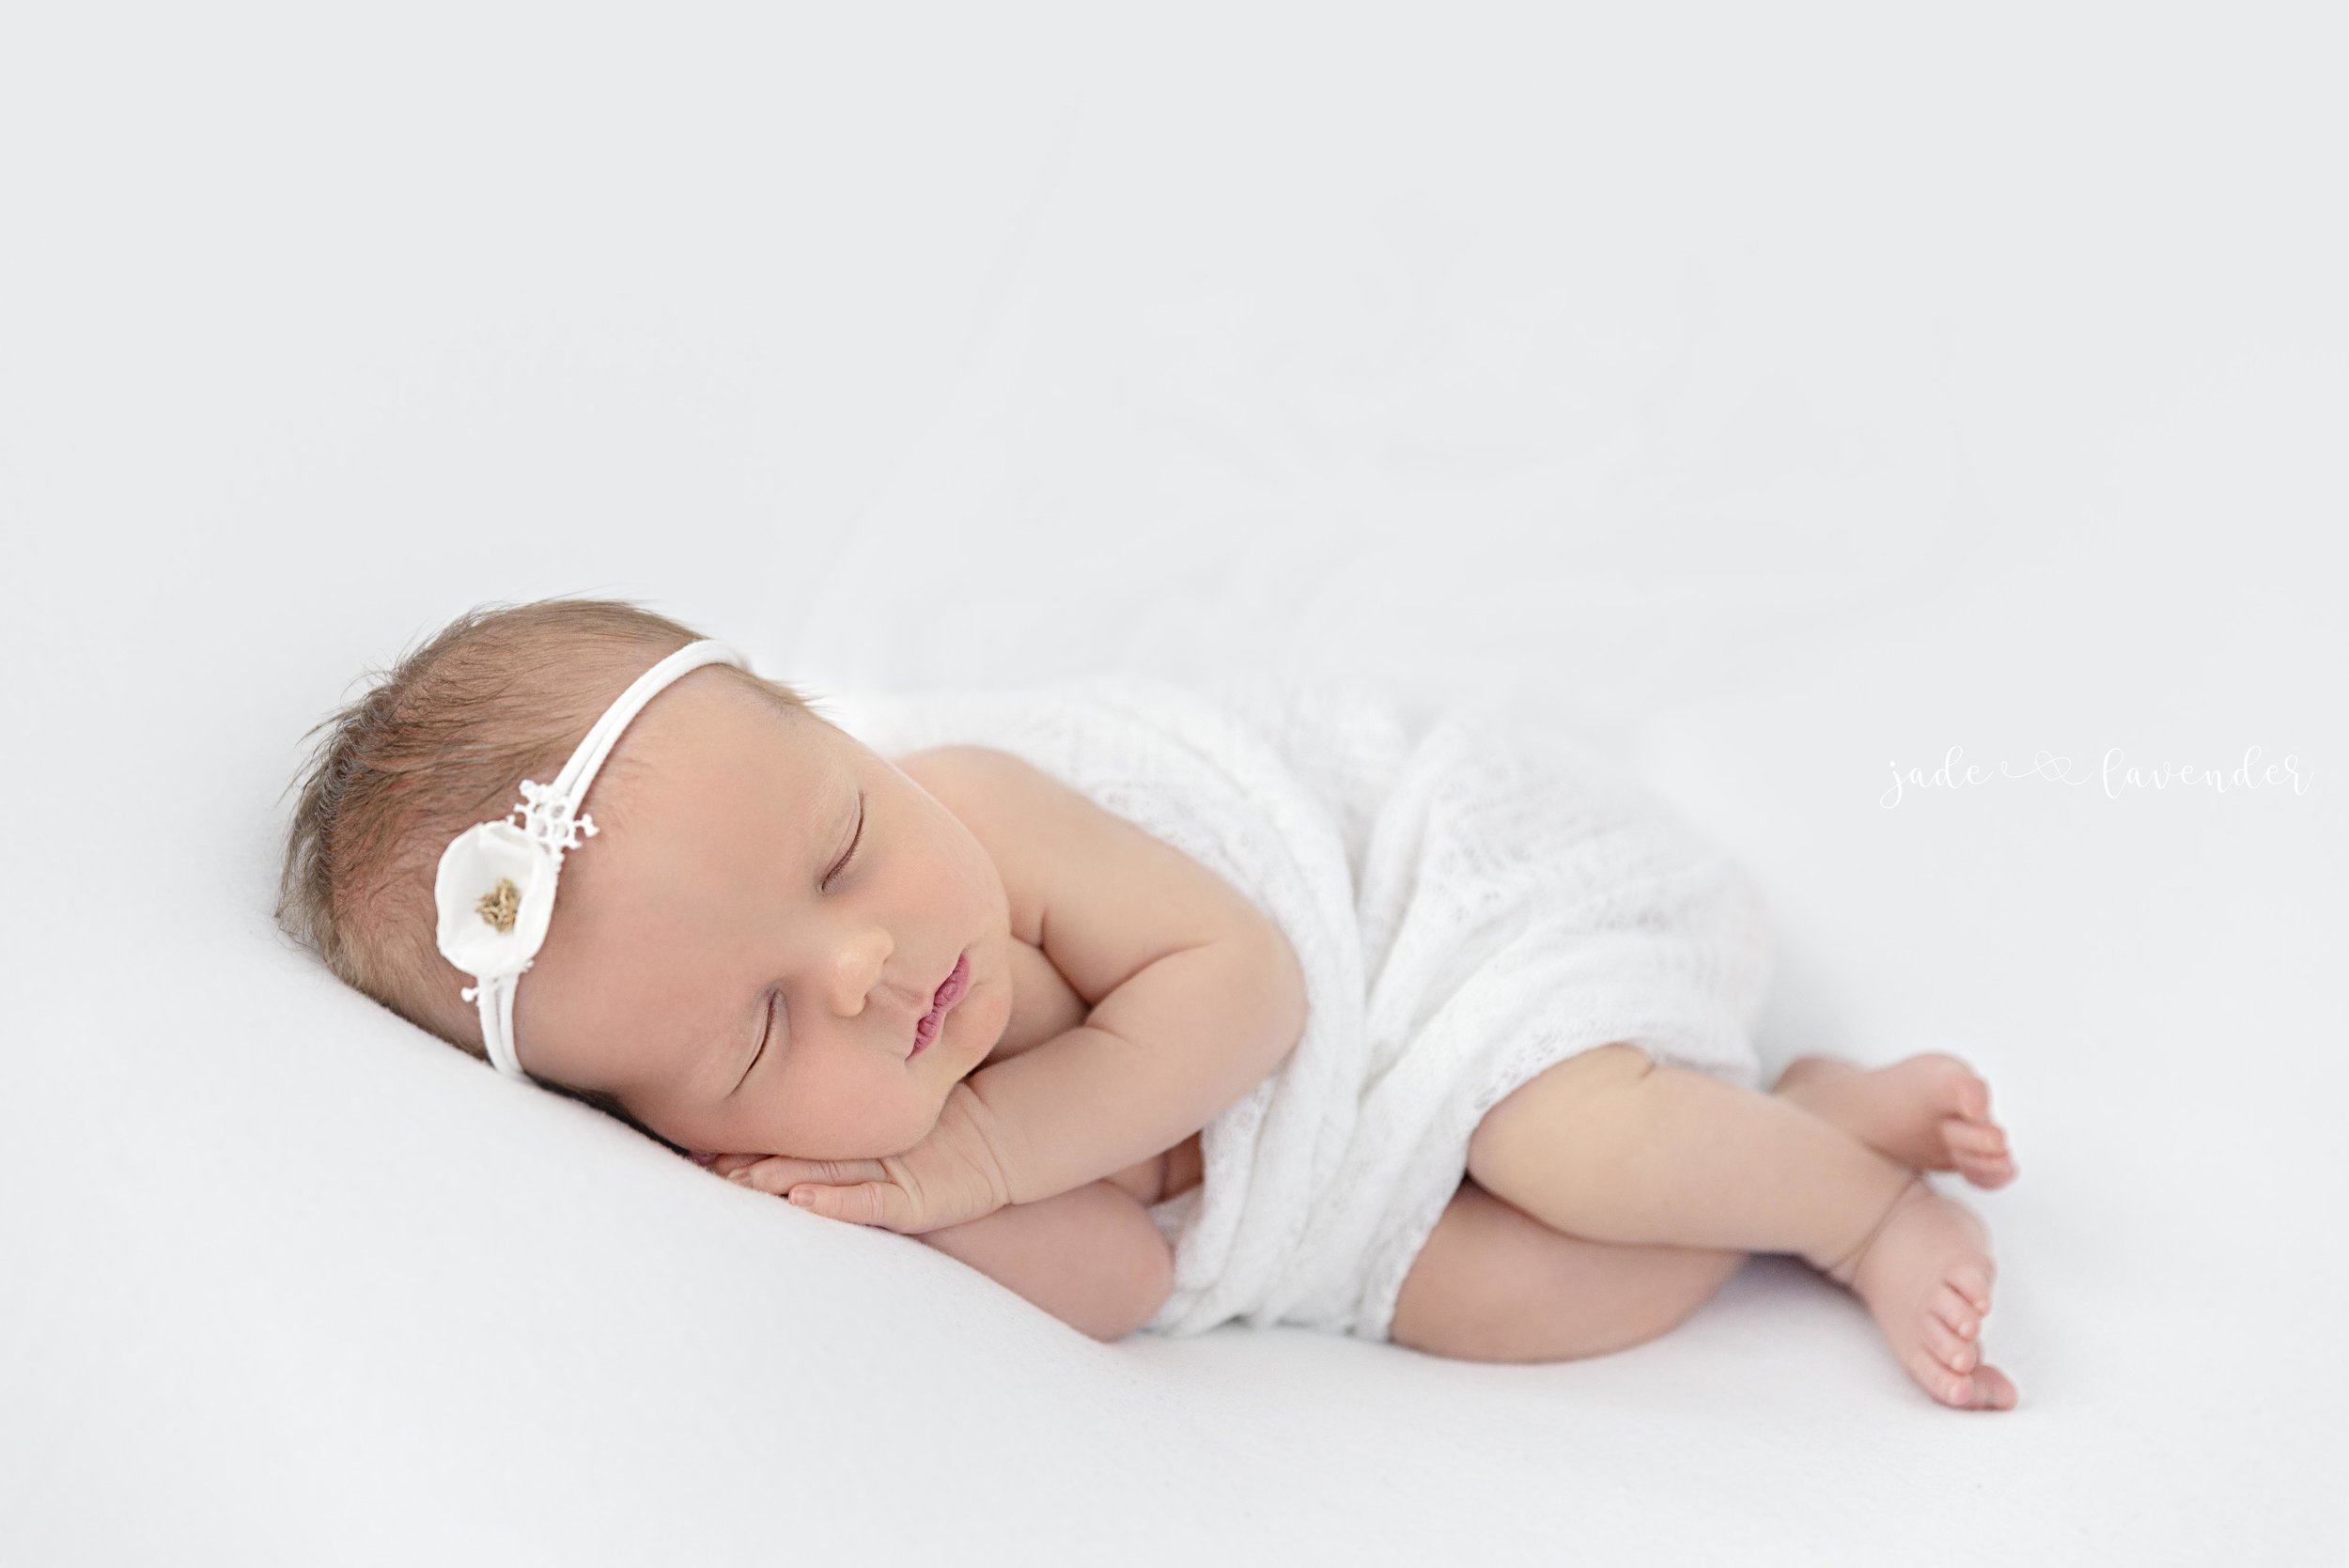 cute-infant-family-photography-baby-photo-studio-newborn-pictures-spokane-washington (2 of 9).jpg